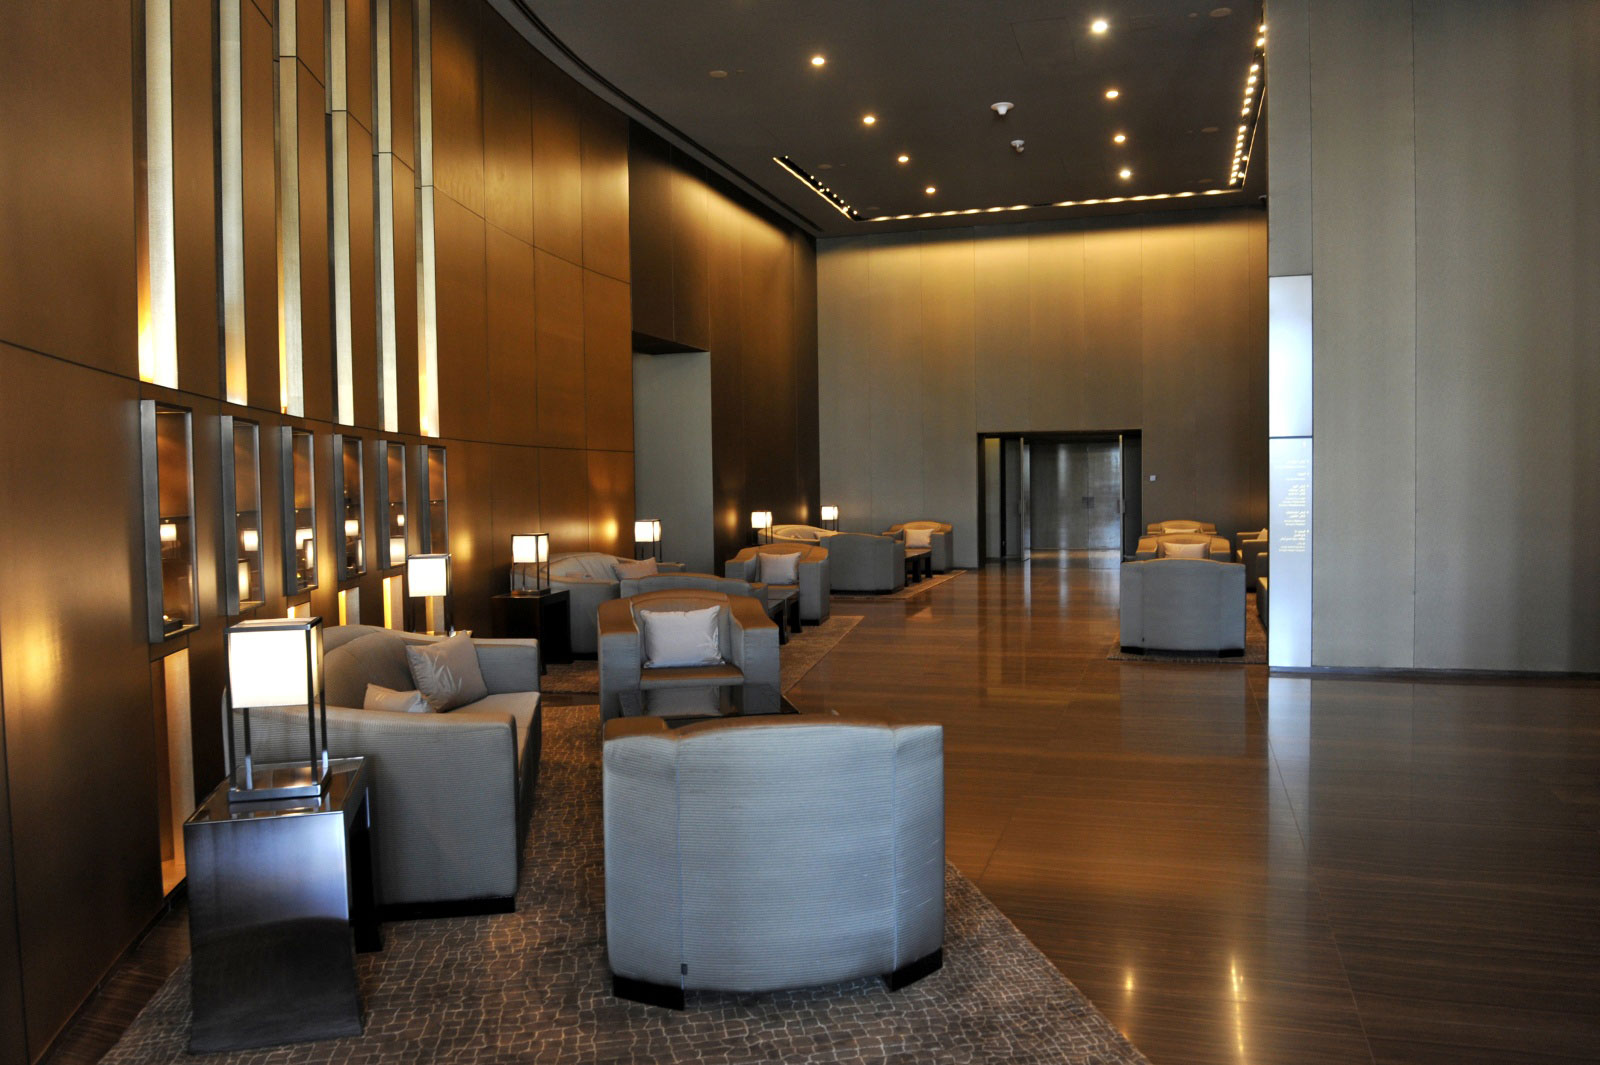 Extremely elegant armani hotel dubai 5 for Burj khalifa room rates per night